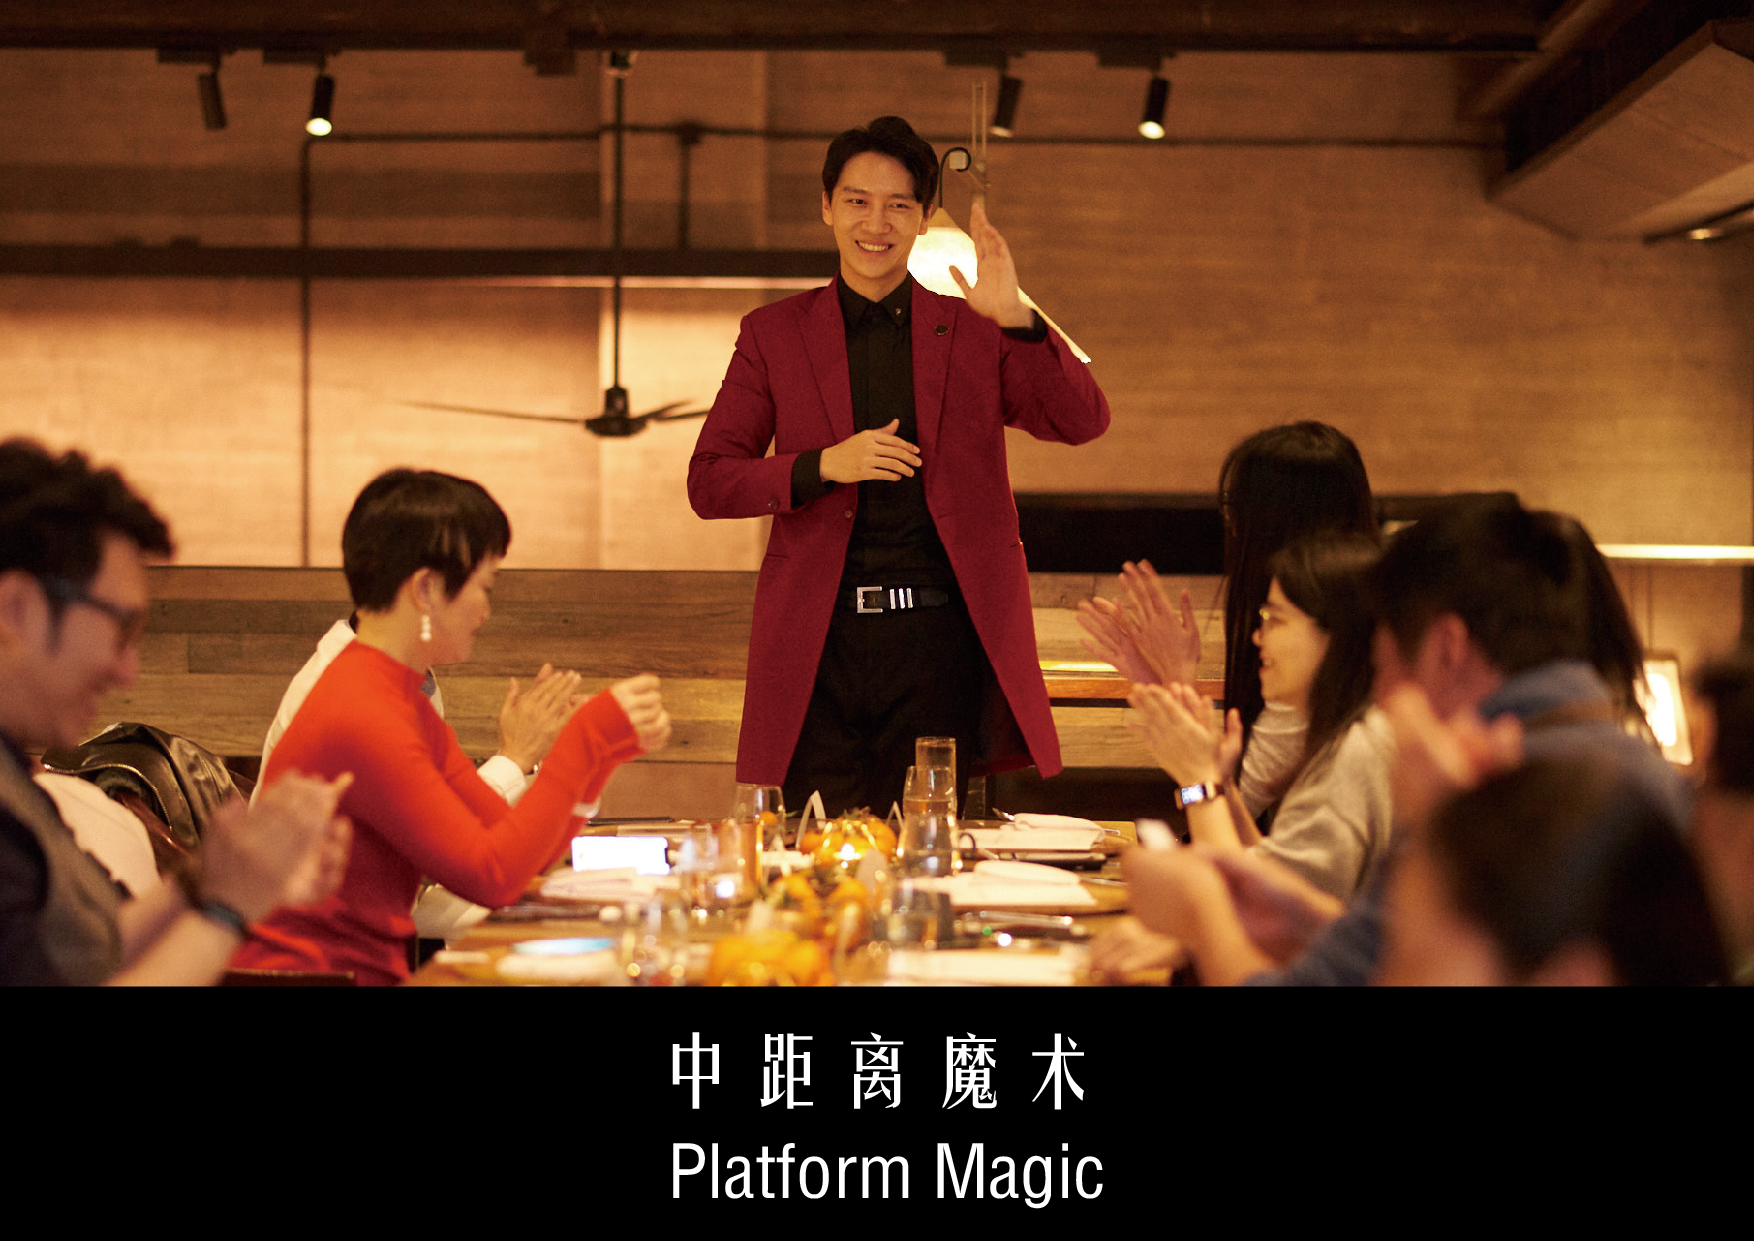 Blackstone Magic最经典的魔术表演形式,魔术师将在活动场地的一个固定位置进行近景魔术表演,观众可坐定后观赏。这种表演形式可以很好的融合到各类活动中,作为主要的娱乐演出项目或带动全场主题及节奏的表演。Blackstone Magic's most classic form of magic shows, in which a magician performs at a fixed position in the venue, while the audience get seated and watch the show. This form of performance can be well integrated into a variety of events, as the main entertaining element highlighting the theme and rhythm of an event.  人数:10-50人 Number of audience: 10-50  适合活动类型:宴会,路演,发布会,展览  Types of events: banquets, road shows, news conferences, exhibitions  建议时长:30-50分钟 Suggested duration: 30-50 minutes